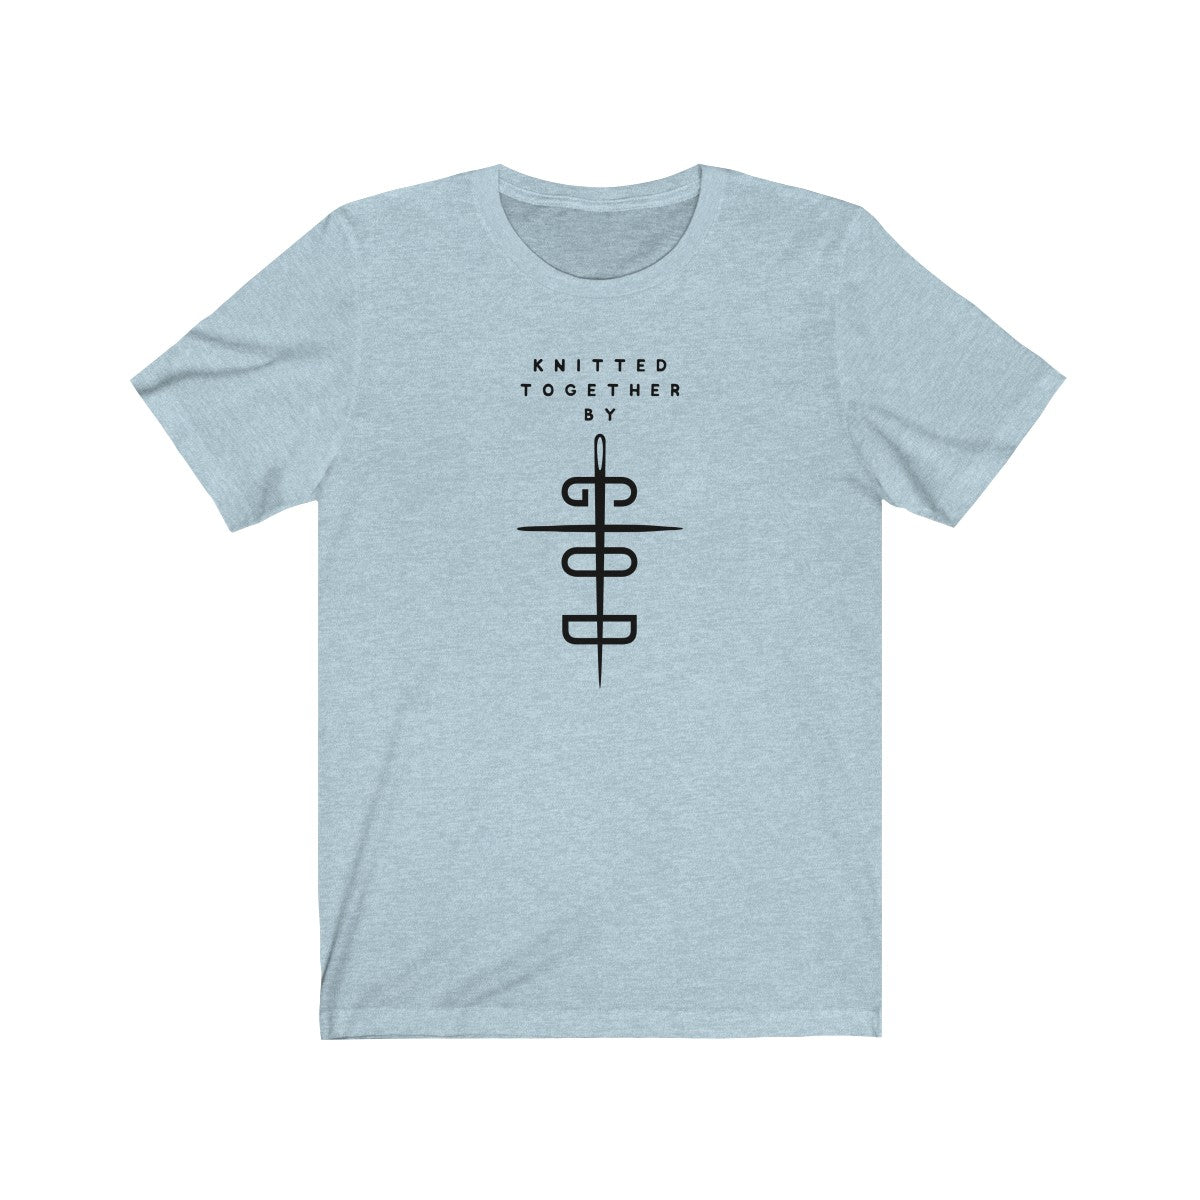 Knitted Together By God Unisex Jersey Short Sleeve Tee